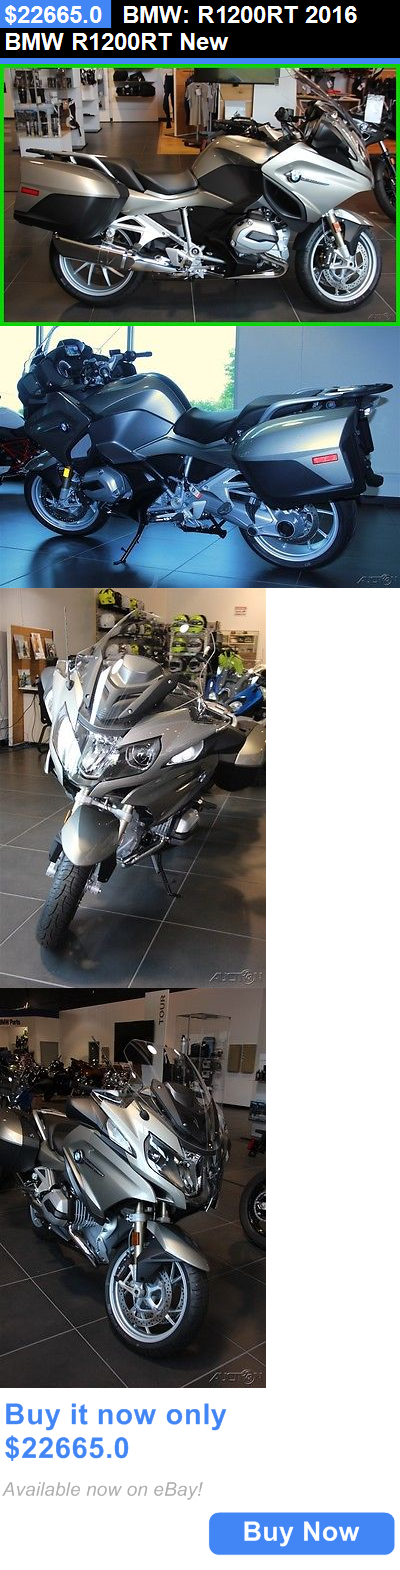 motorcycles And scooters: Bmw: R1200rt 2016 Bmw R1200rt New BUY IT NOW ONLY: $22665.0